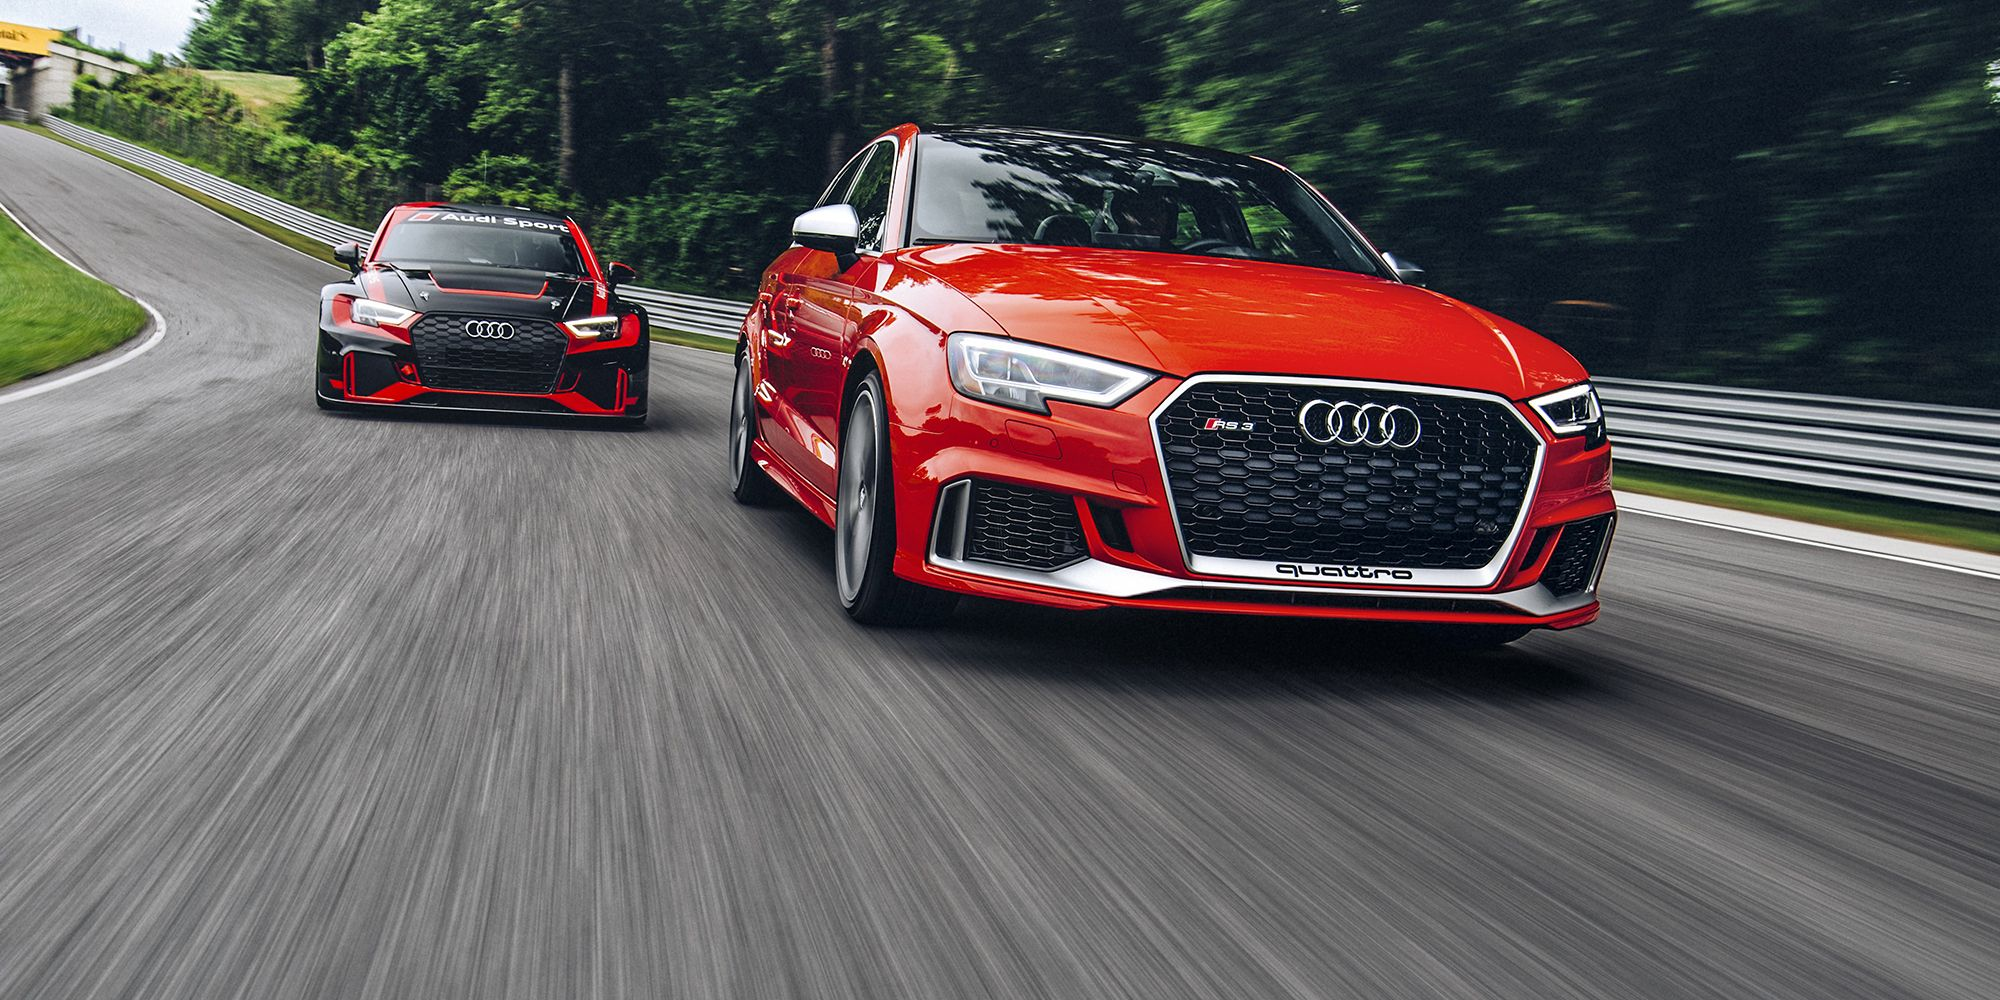 Audi Rs3 And Rs3 Tcr Race Car The Road Track Test